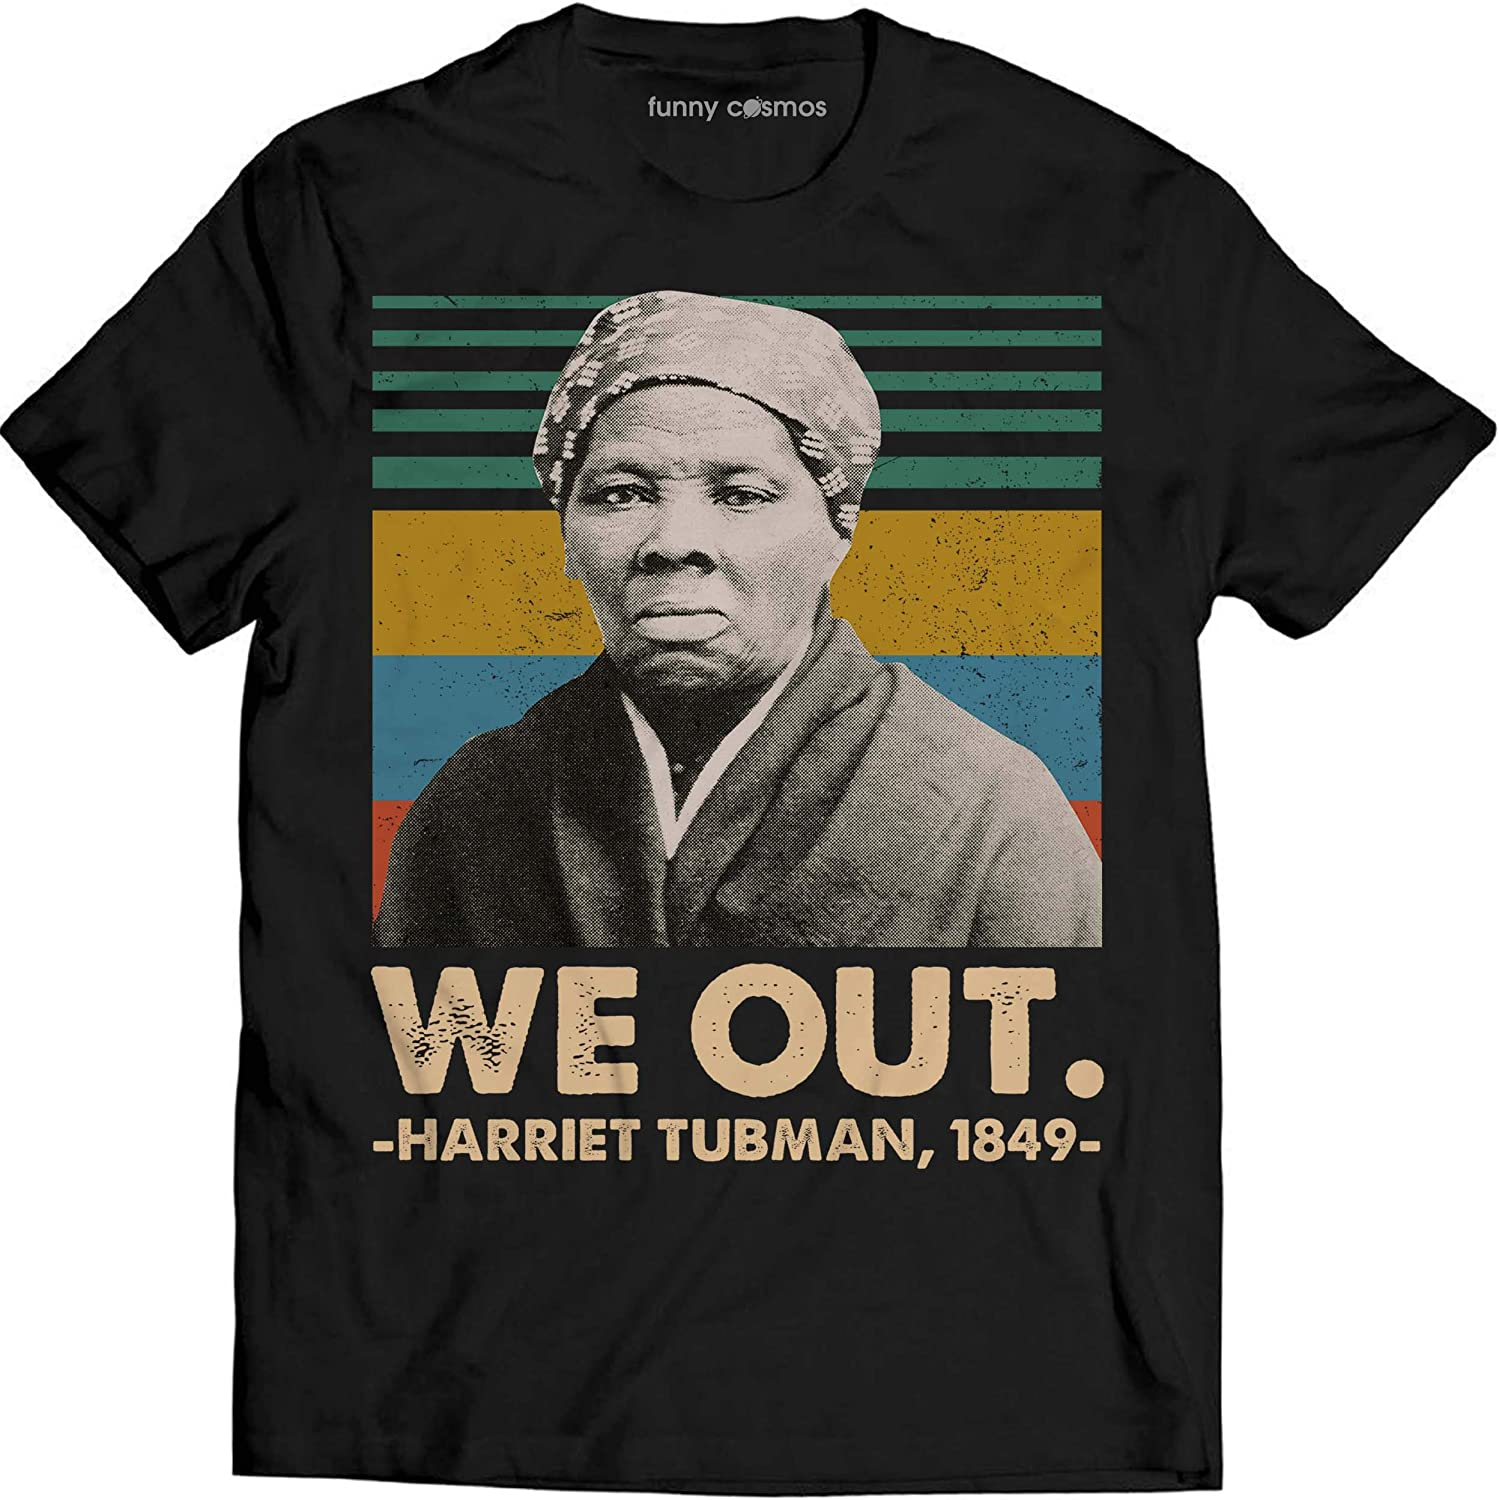 girls or adults Black Women History Sweater for kids boys toddlers We Out Harriet Tubman 1849 Sweatshirt